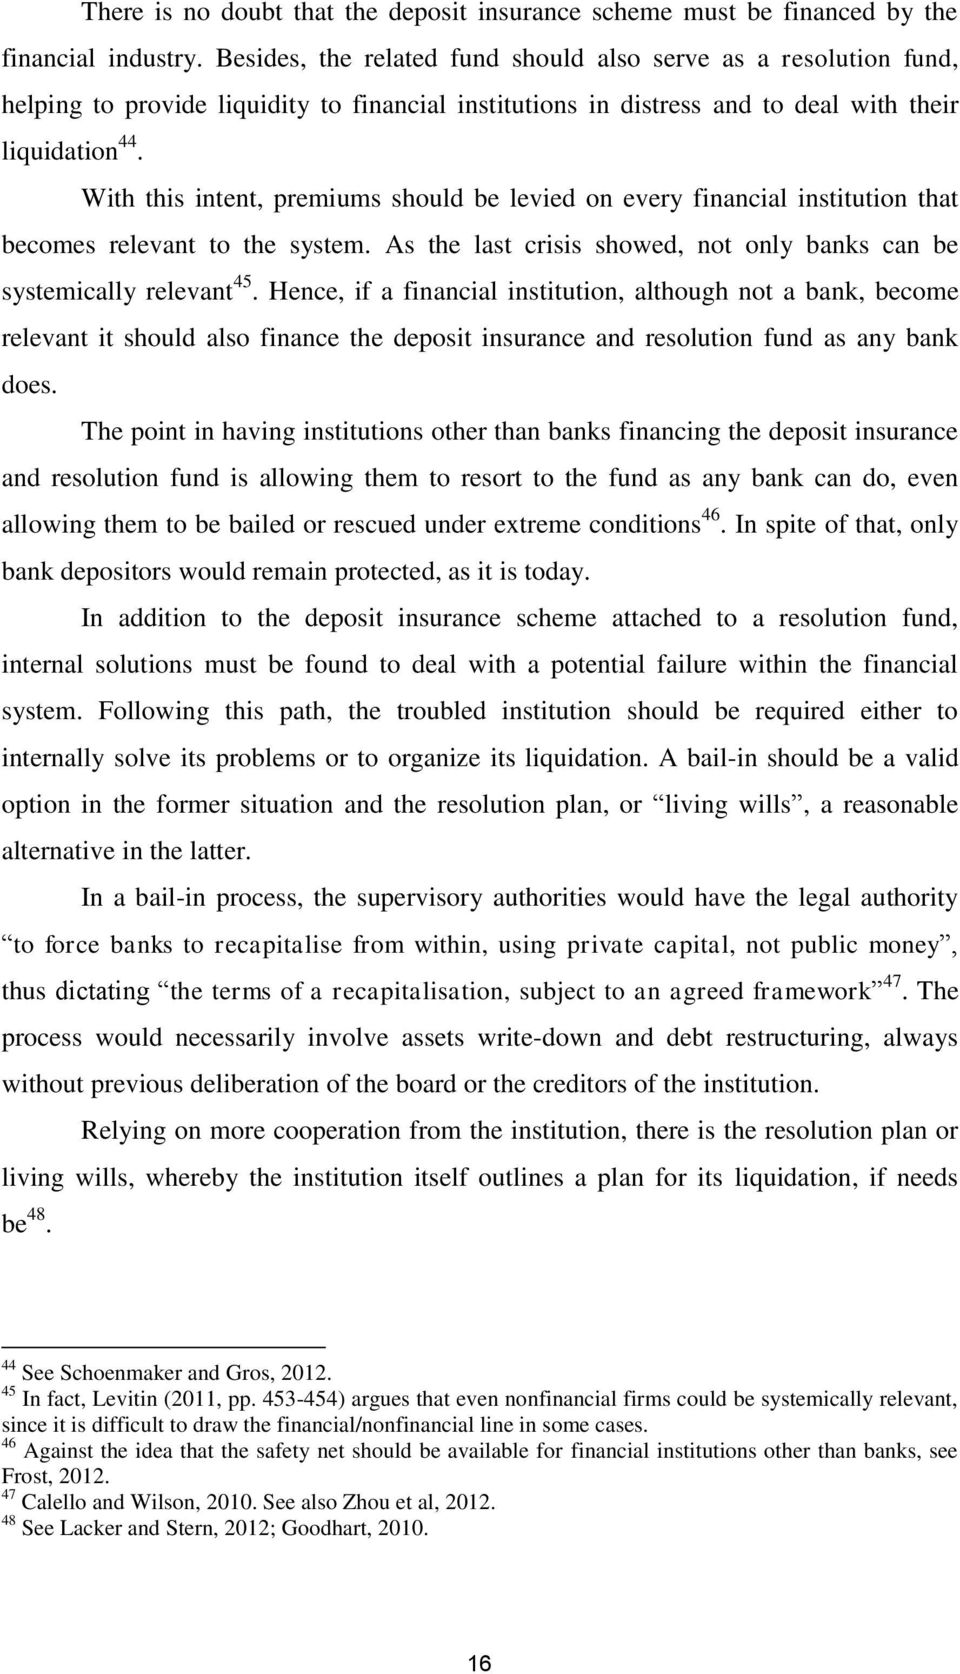 With this intent, premiums should be levied on every financial institution that becomes relevant to the system. As the last crisis showed, not only banks can be systemically relevant 45.